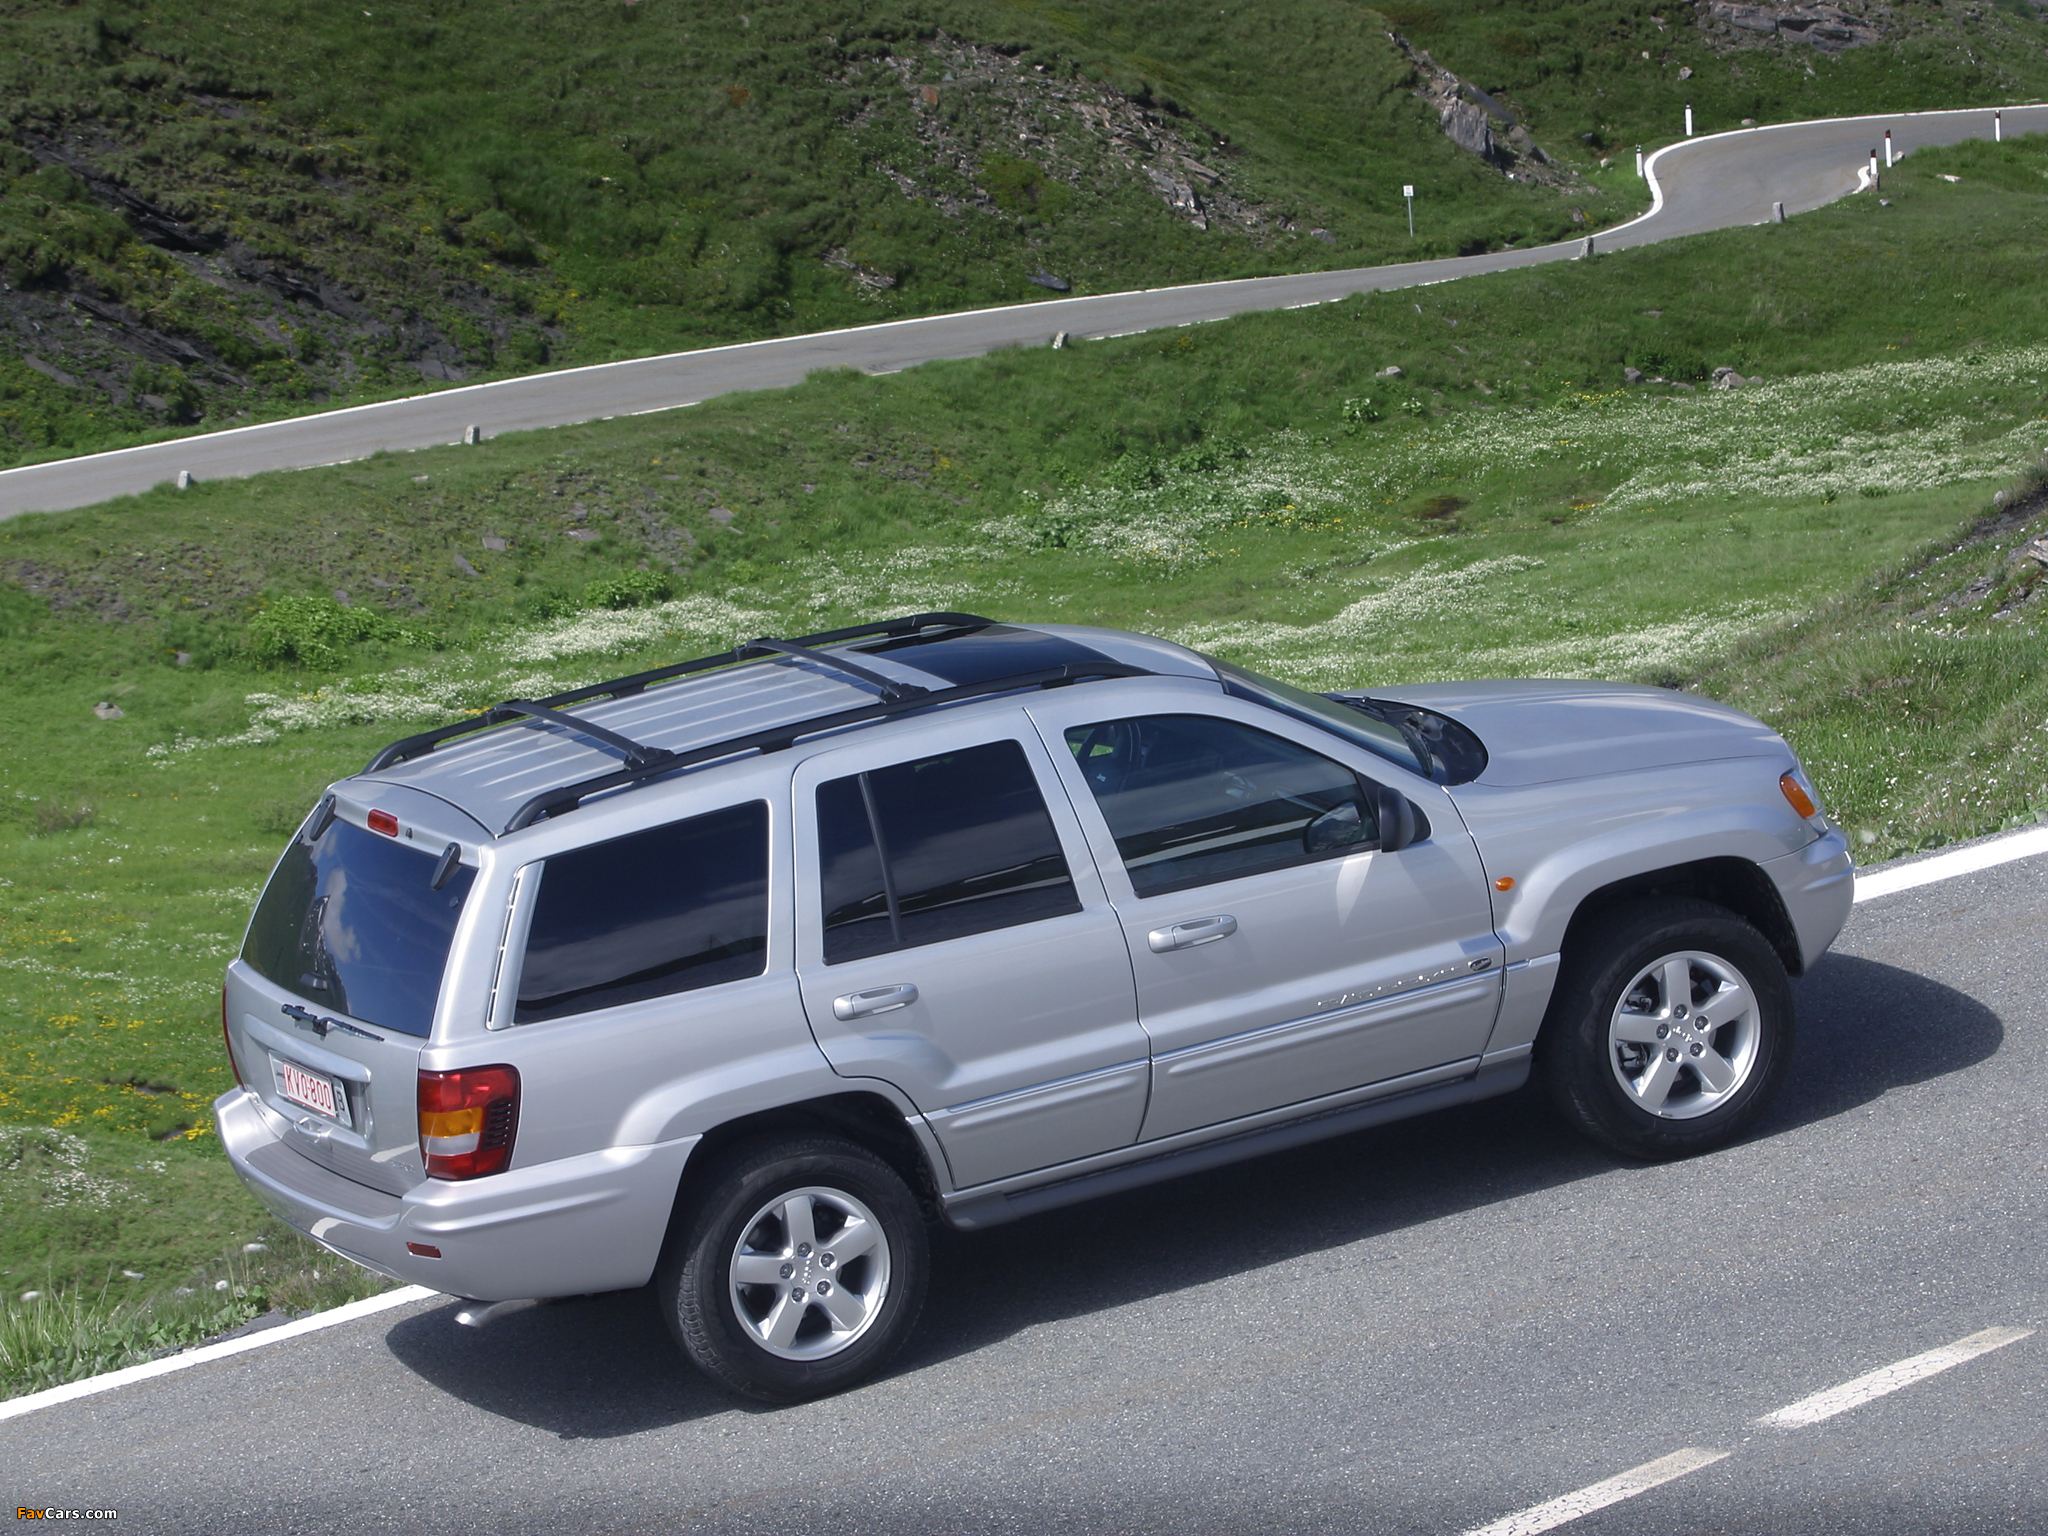 jeep grand cherokee overland wj 2002 04 wallpapers 2048x1536. Black Bedroom Furniture Sets. Home Design Ideas